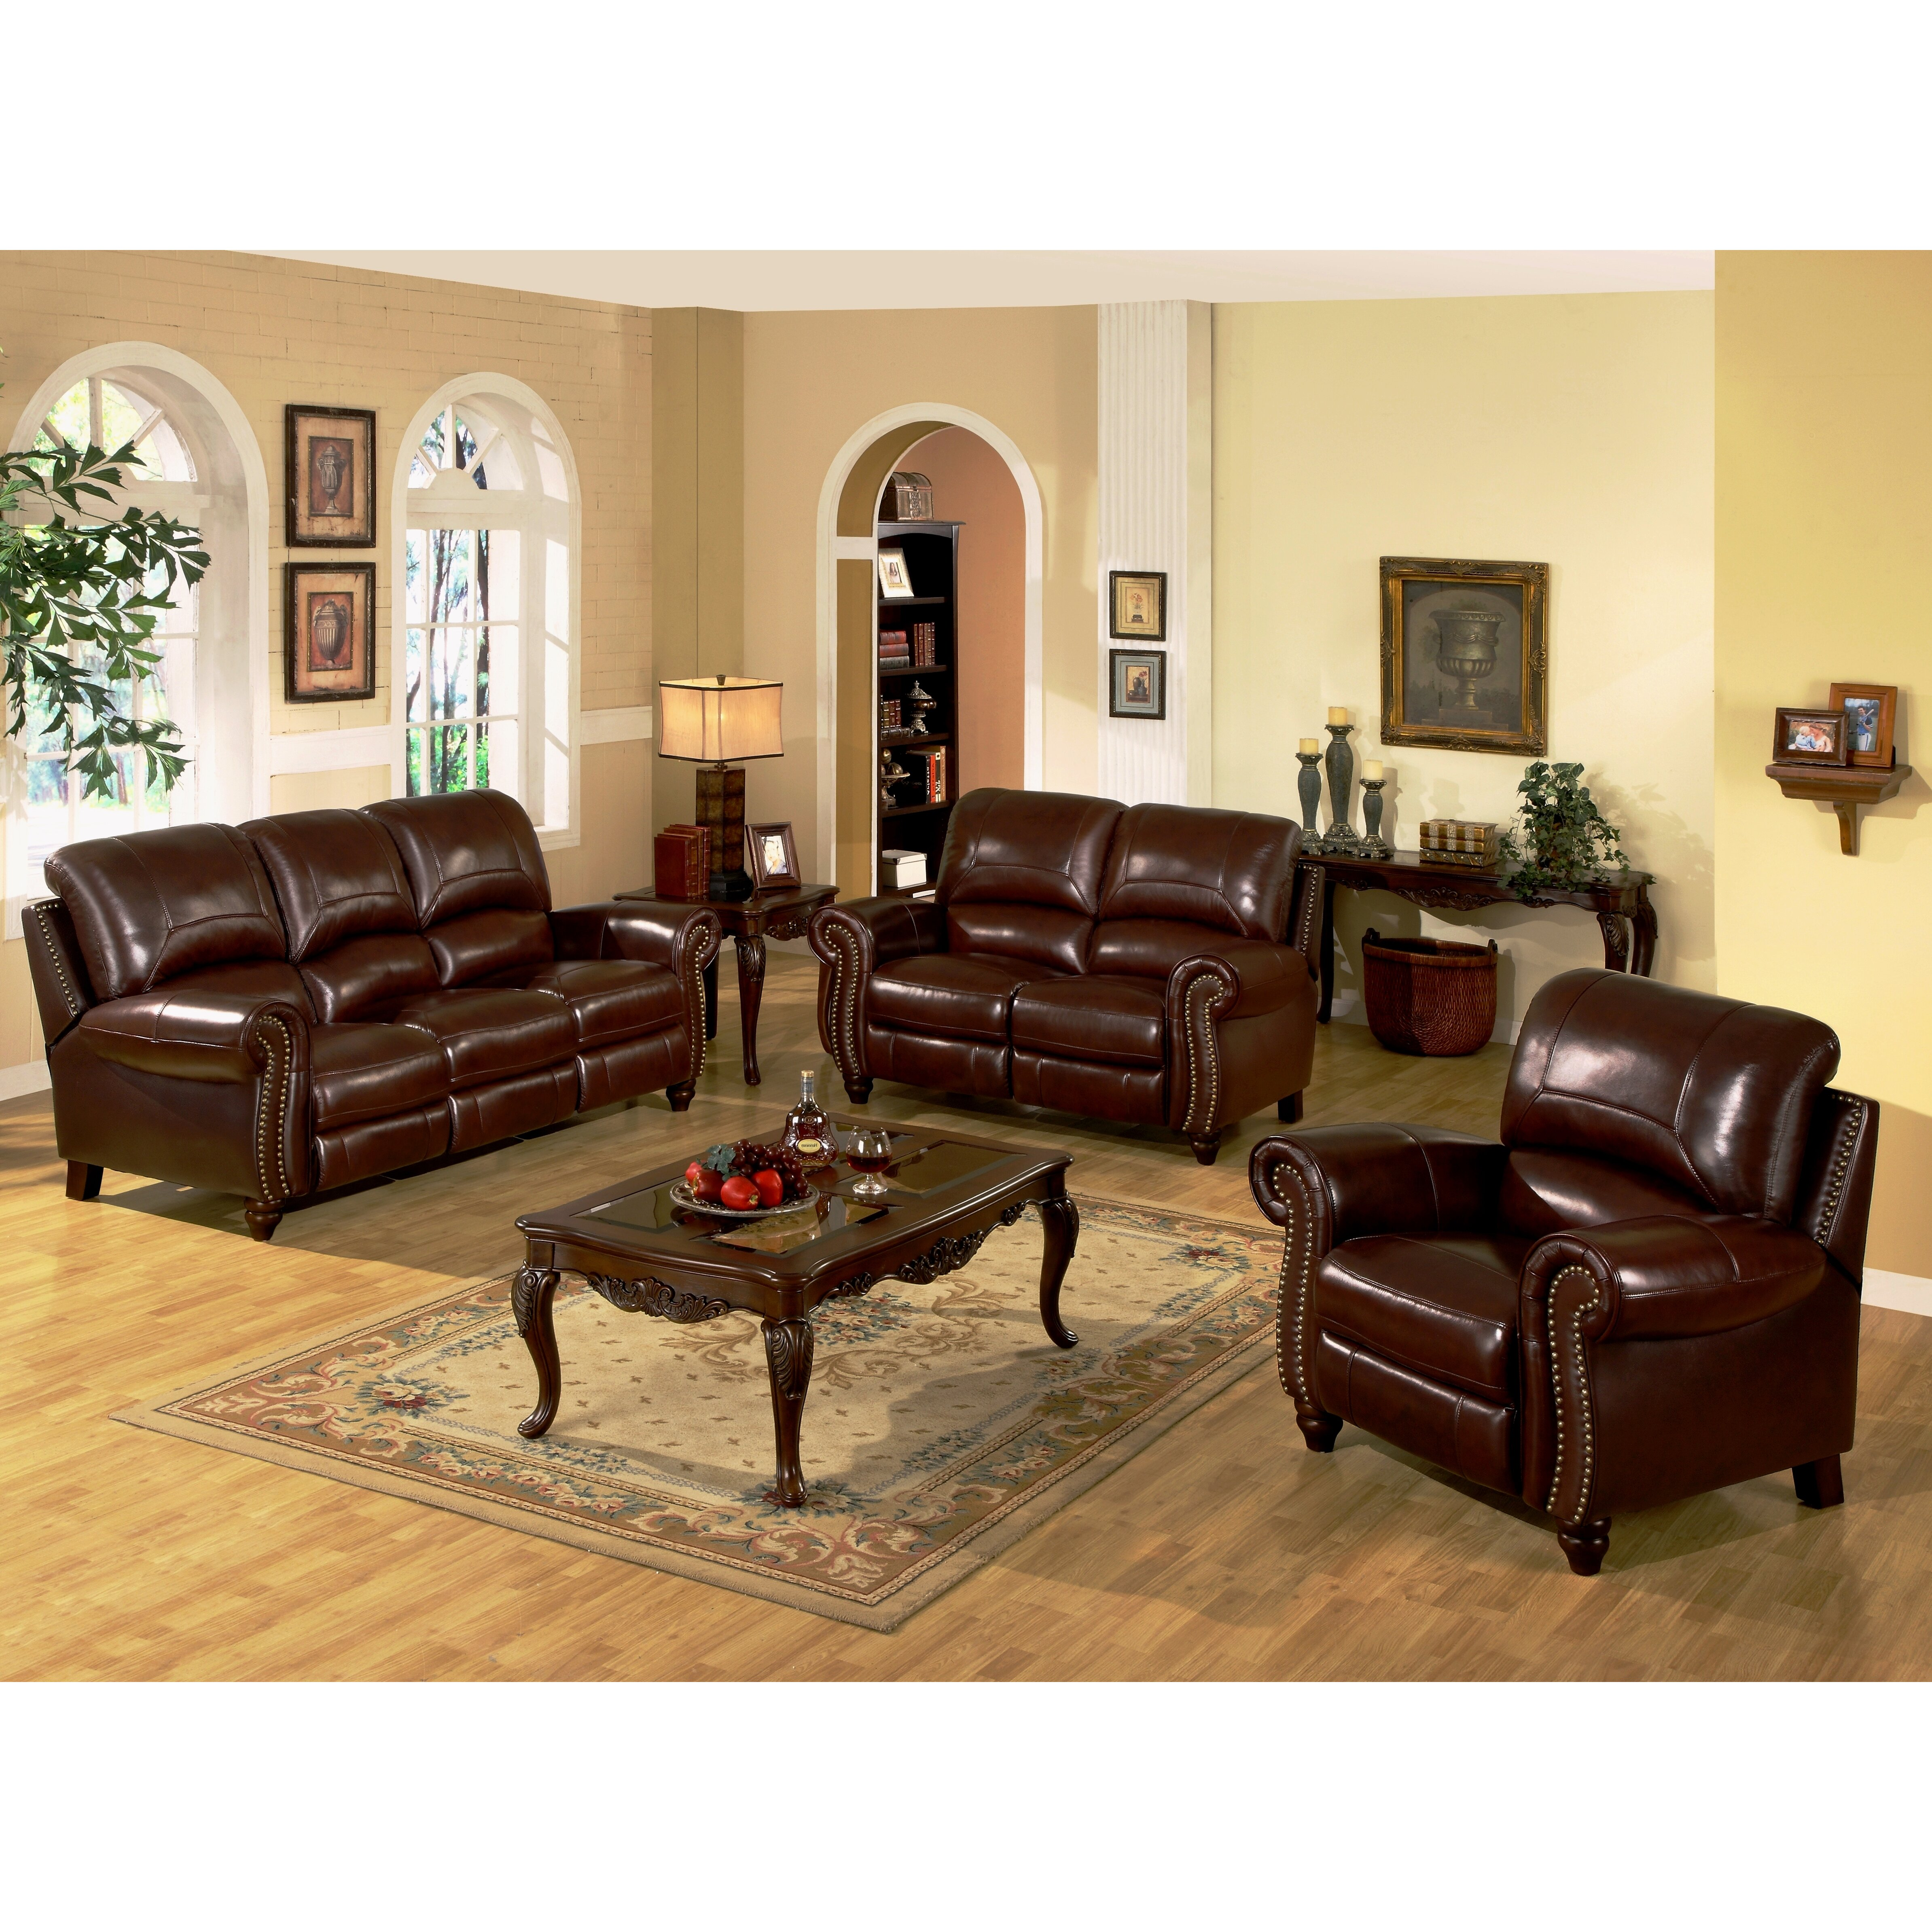 Abbyson Living Charlotte Leather Reclining Sofa Reviews Wayfair Supply